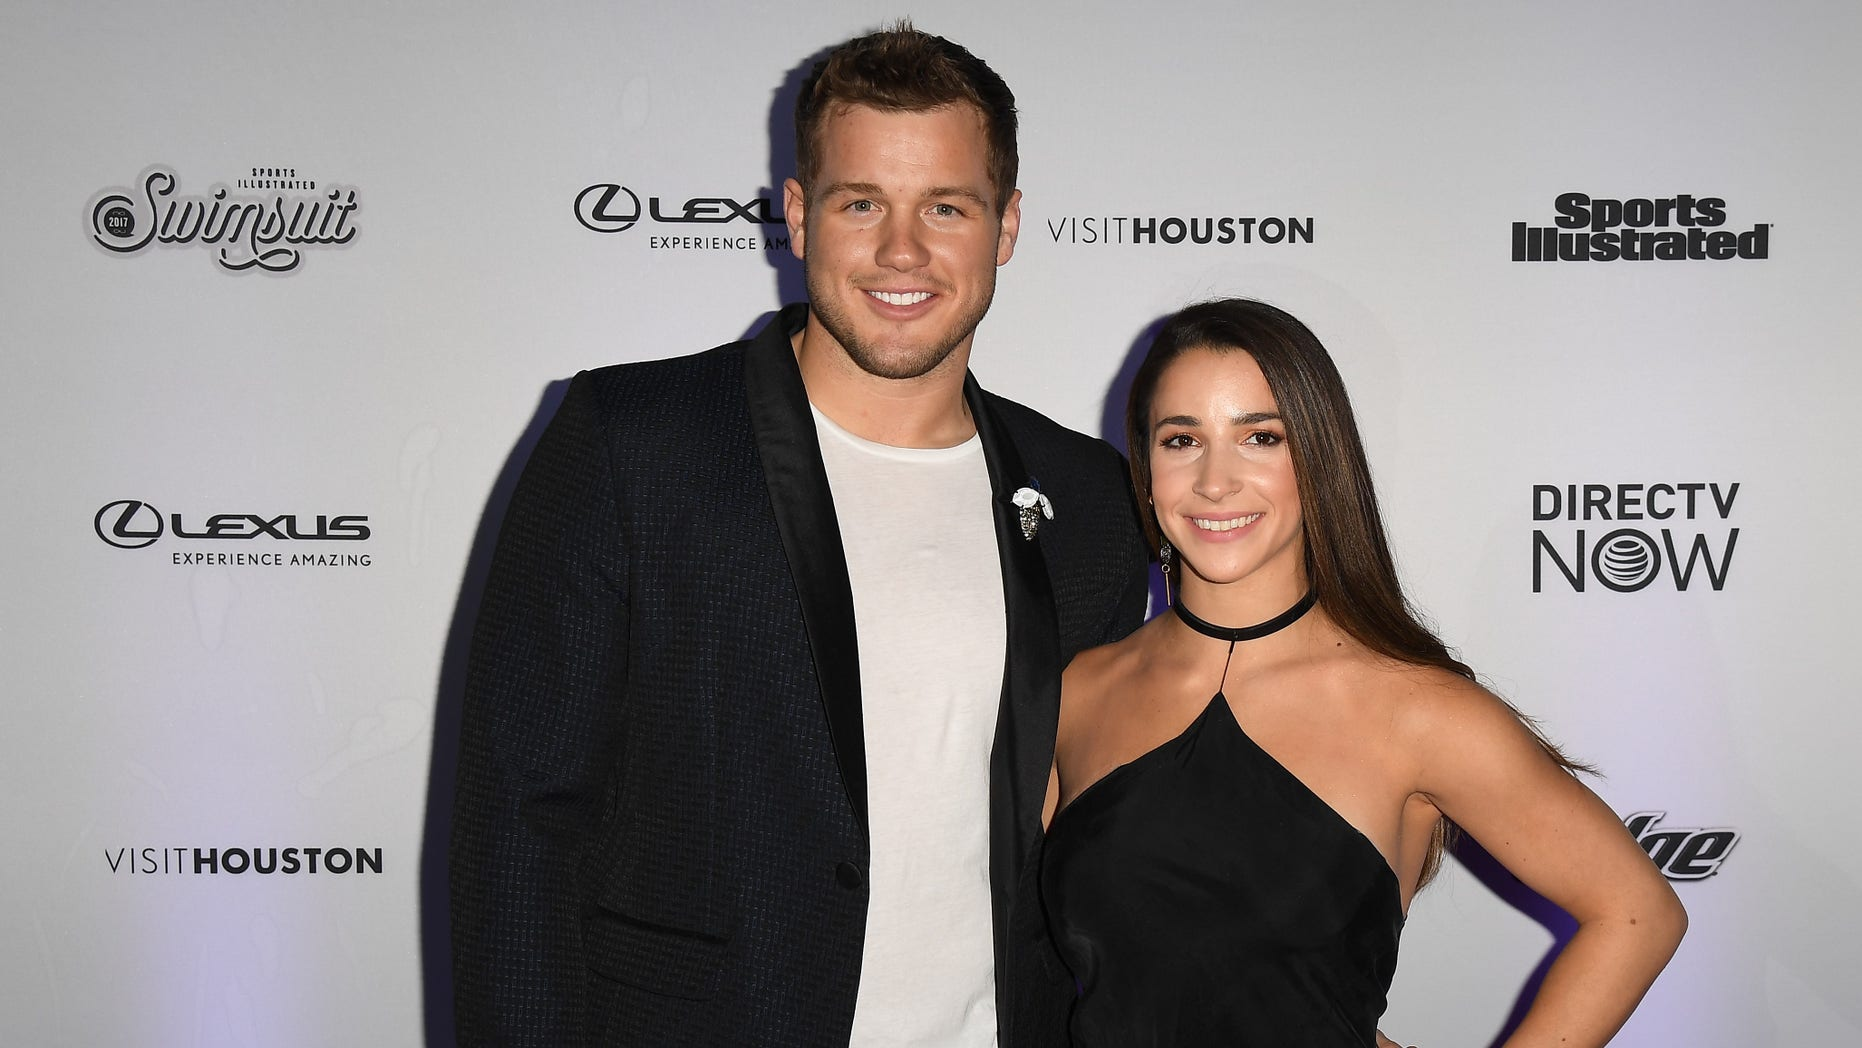 Colton Underwood spoke of Aly Raisman as her